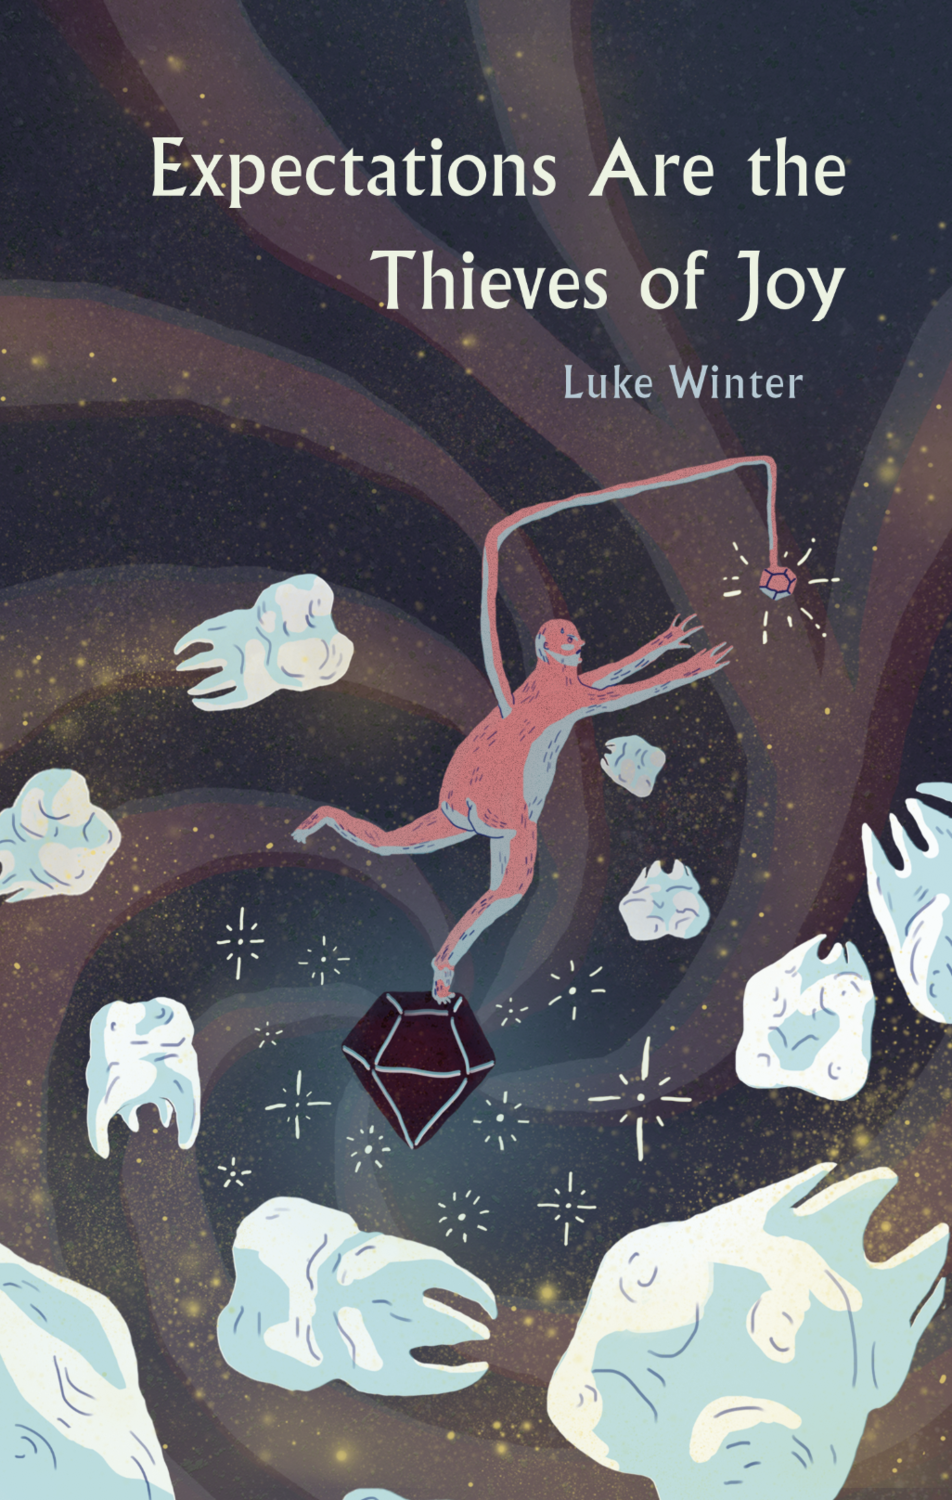 Expectations Are the Thieves of Joy by Luke Winter